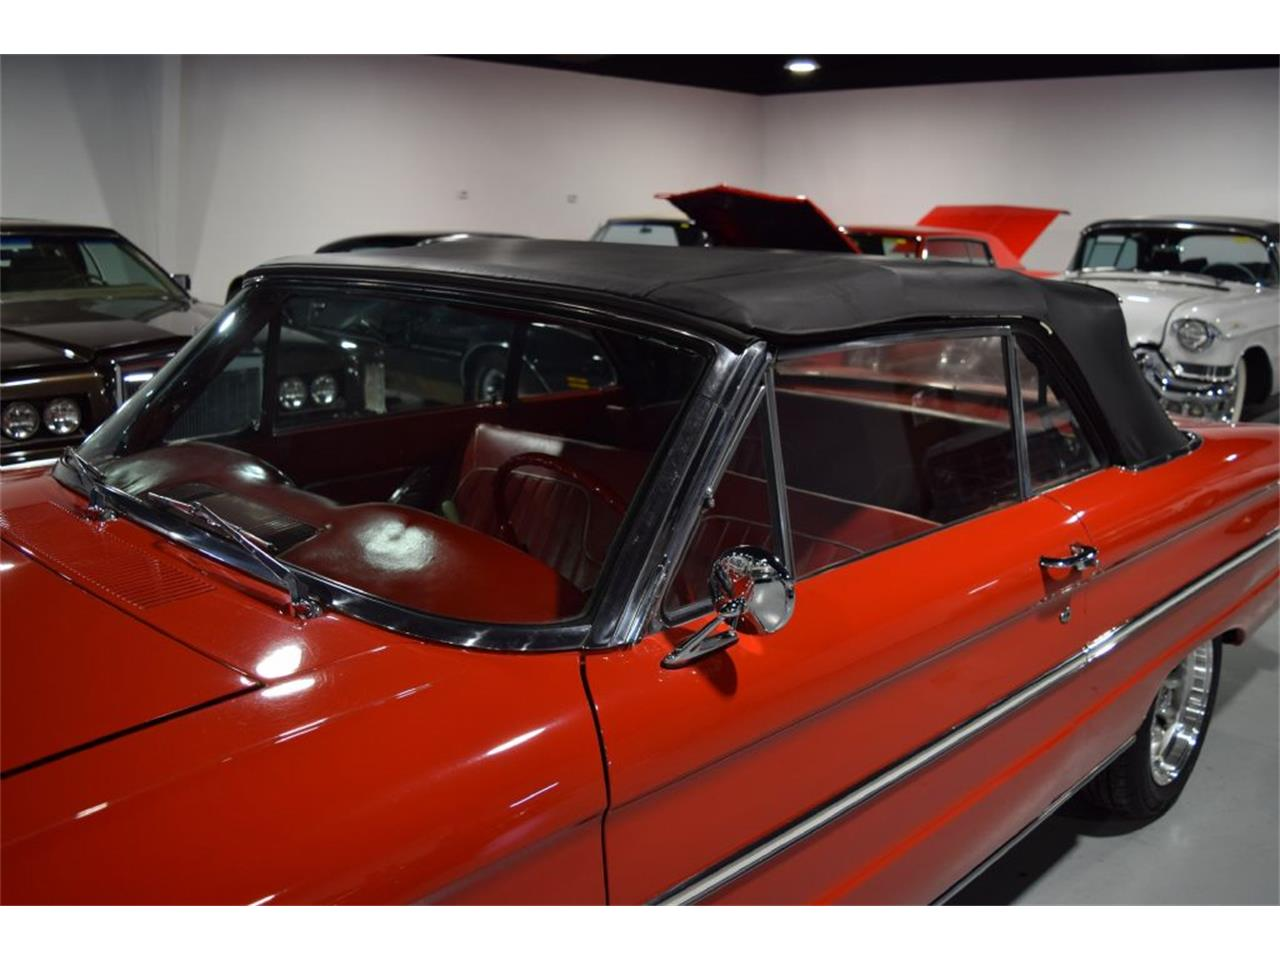 1963 Ford Falcon Futura for sale in Sioux City, IA – photo 5